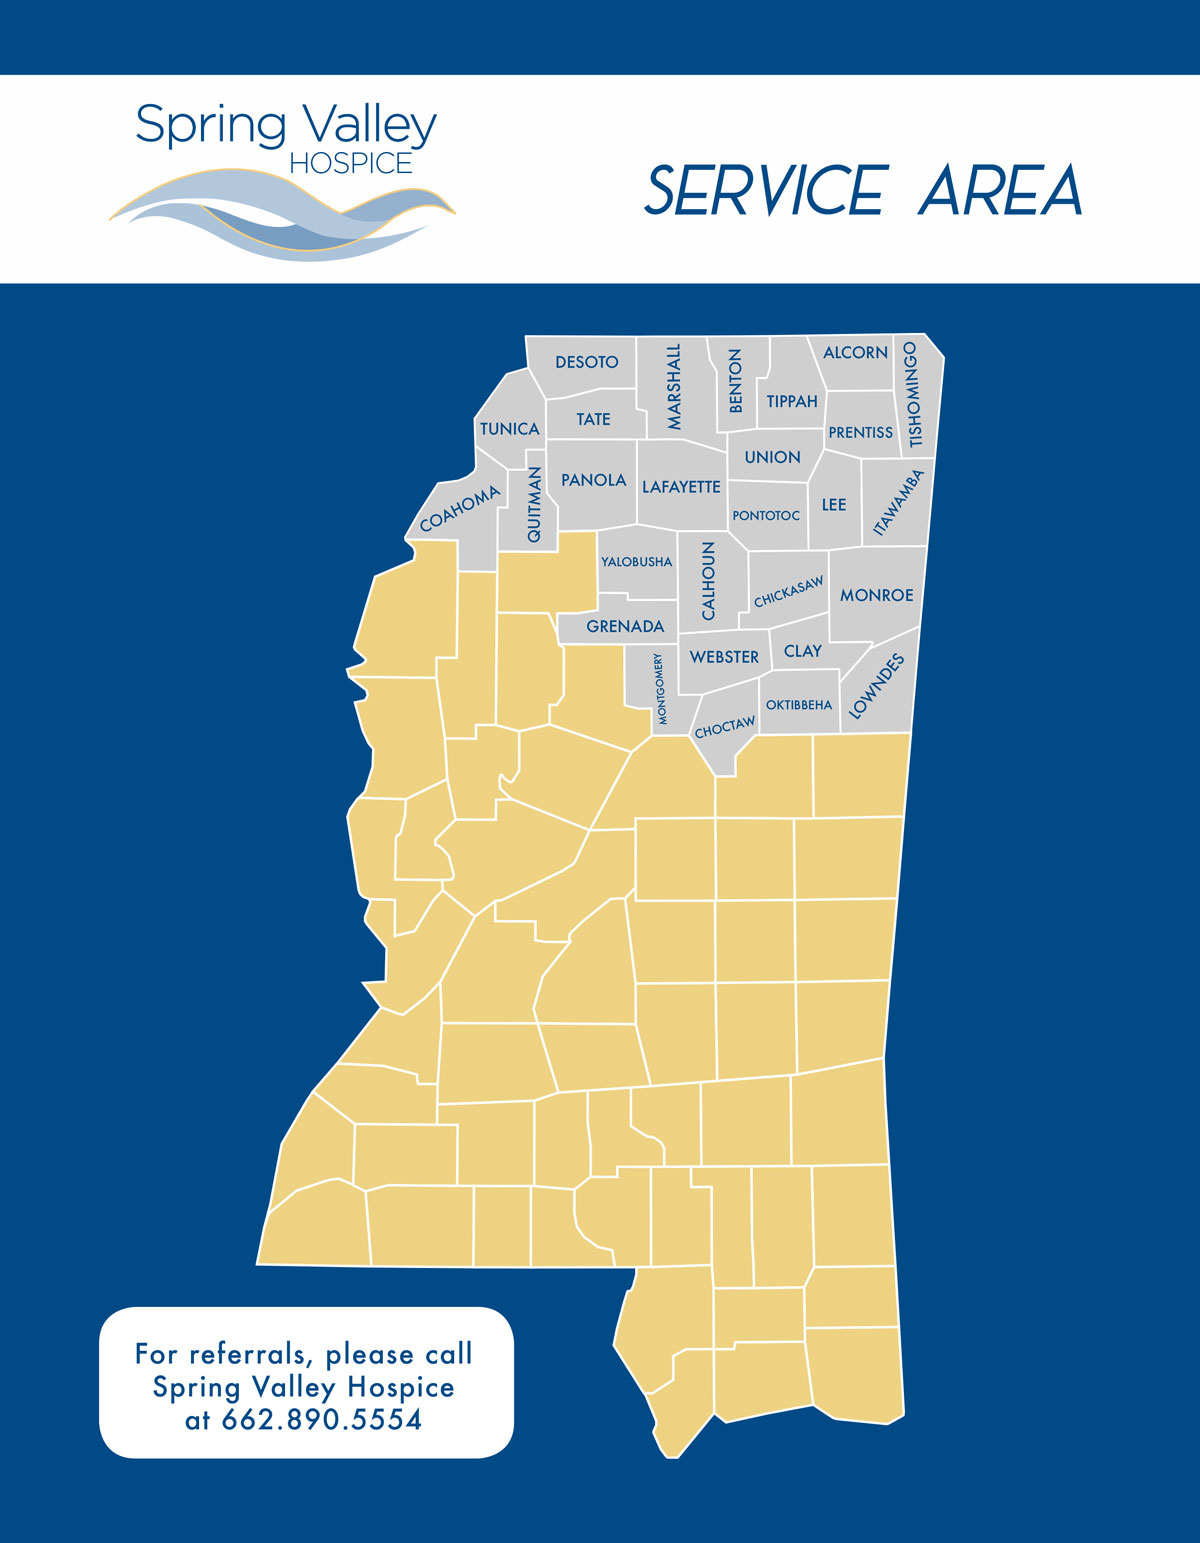 Spring Valley Hospice service area map